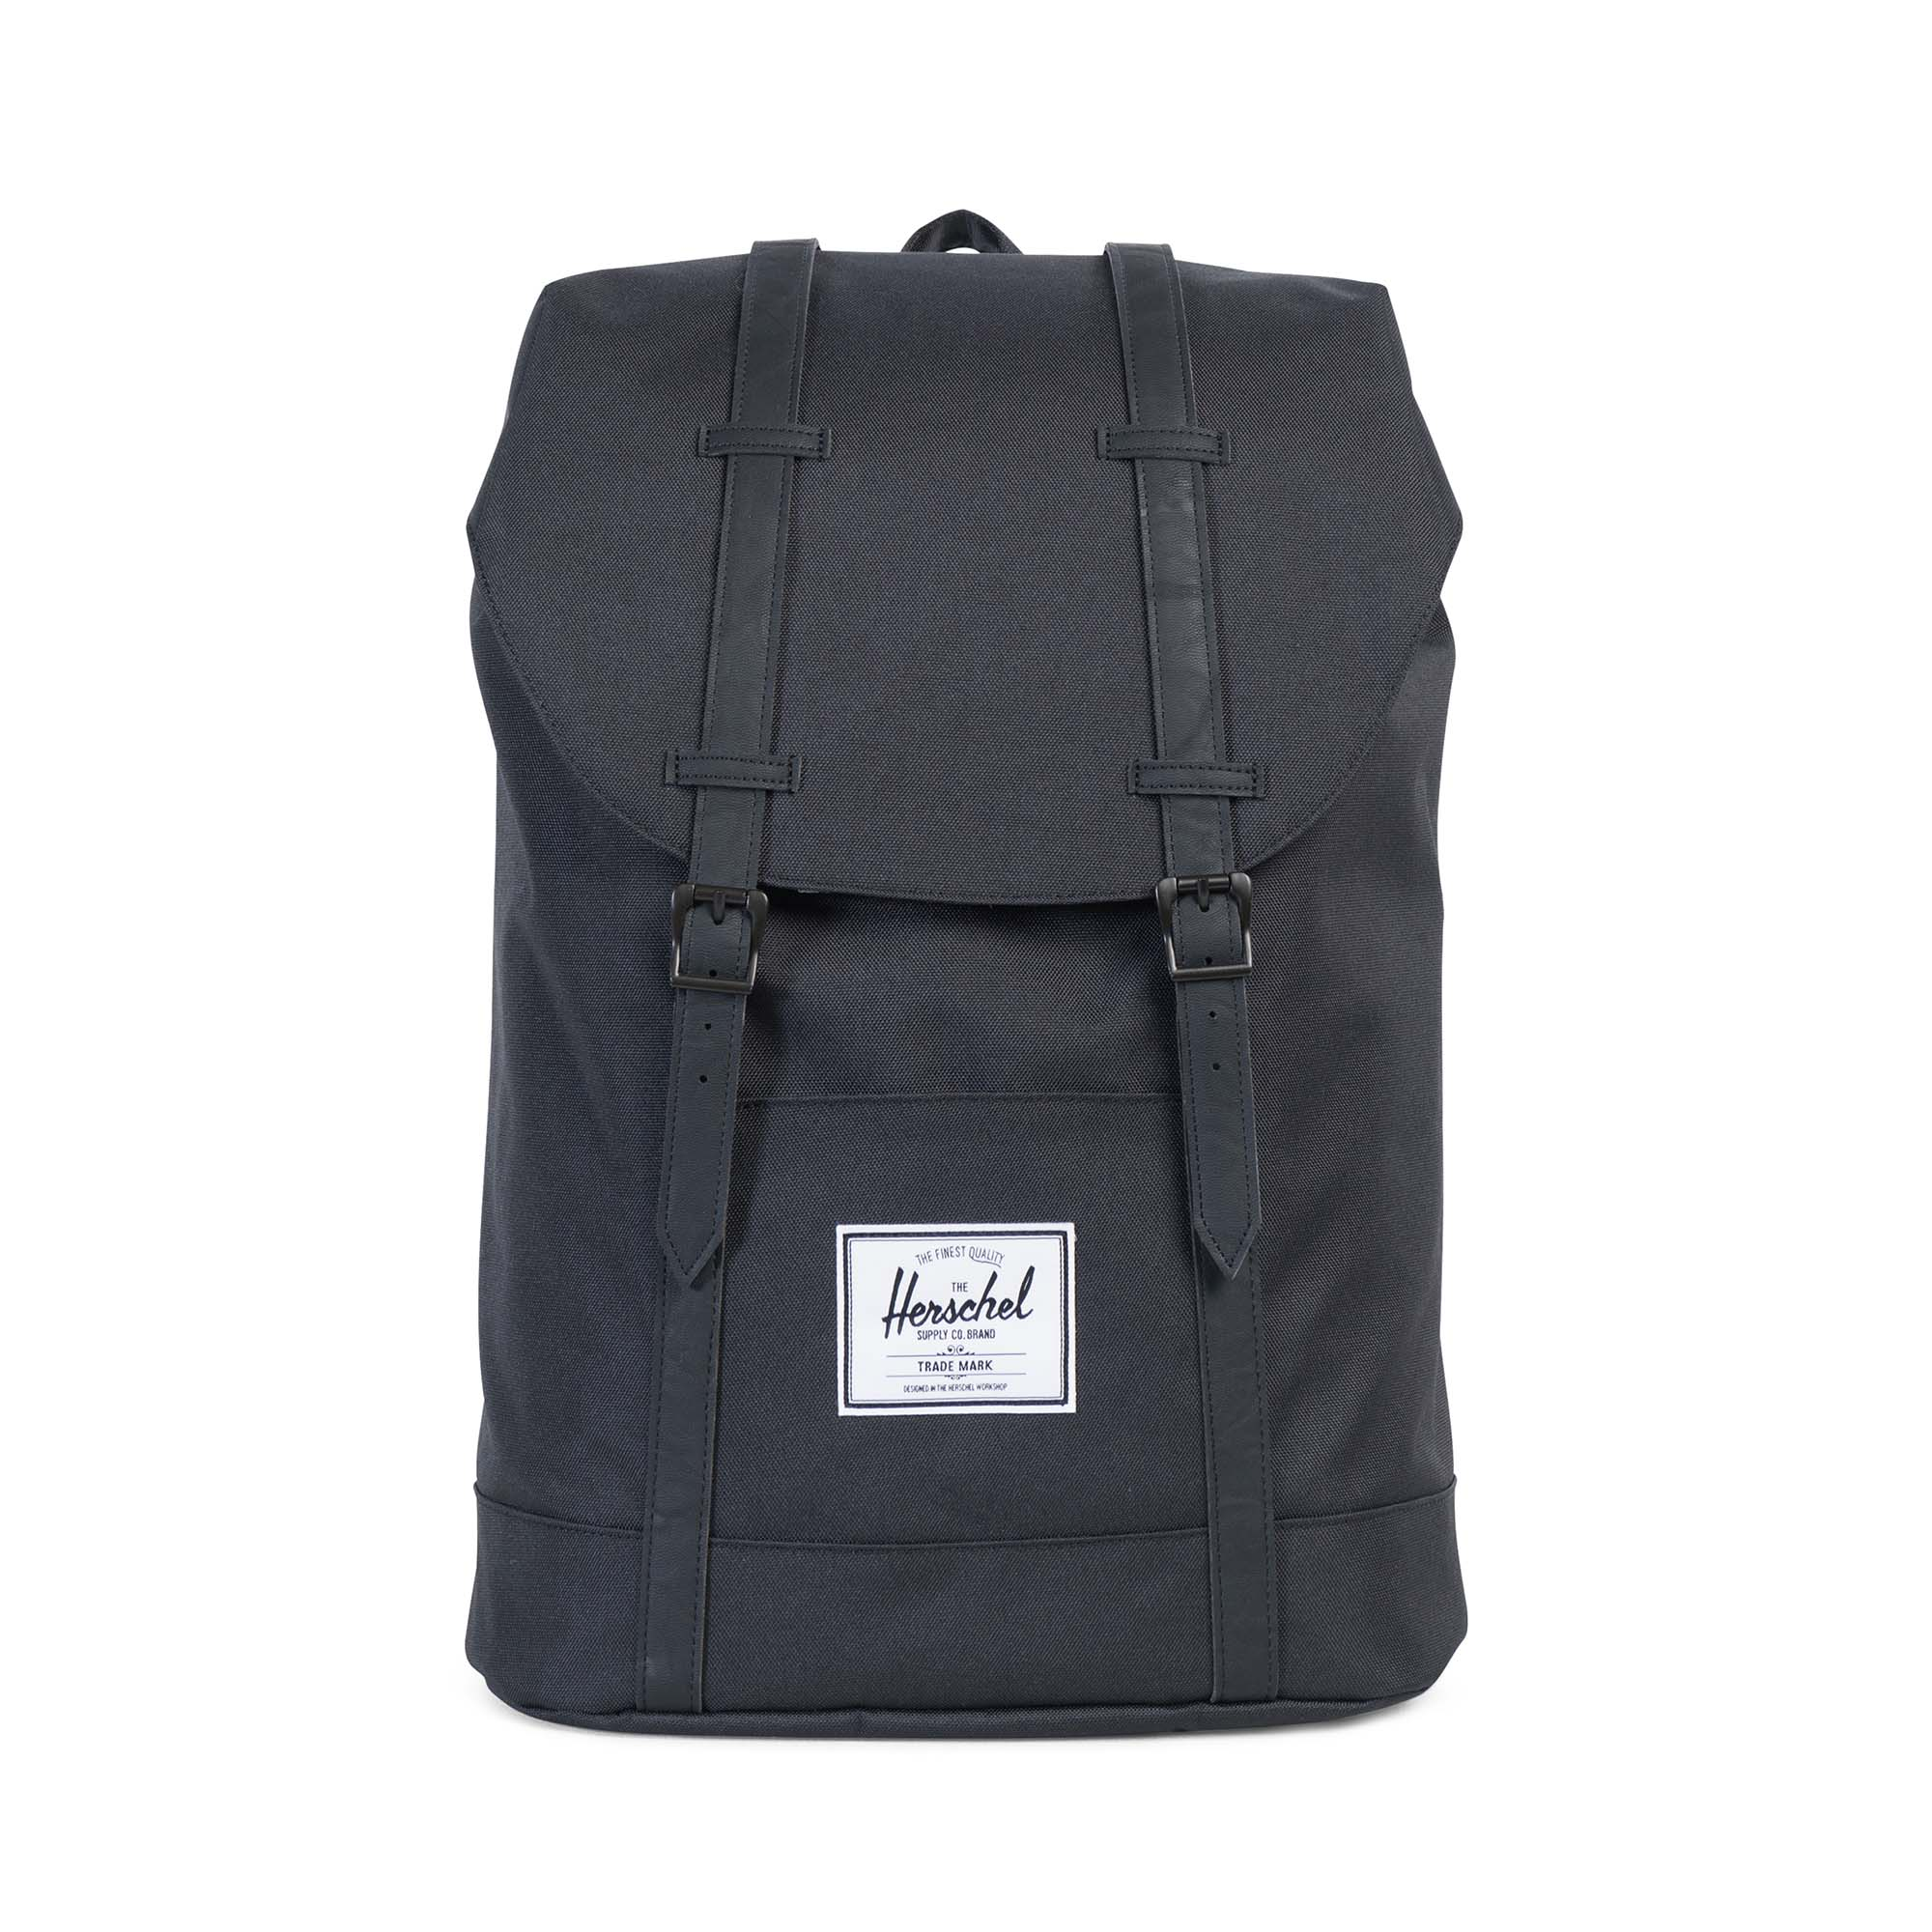 Retreat Backpack   Herschel Supply Company 3dc6d2d61f